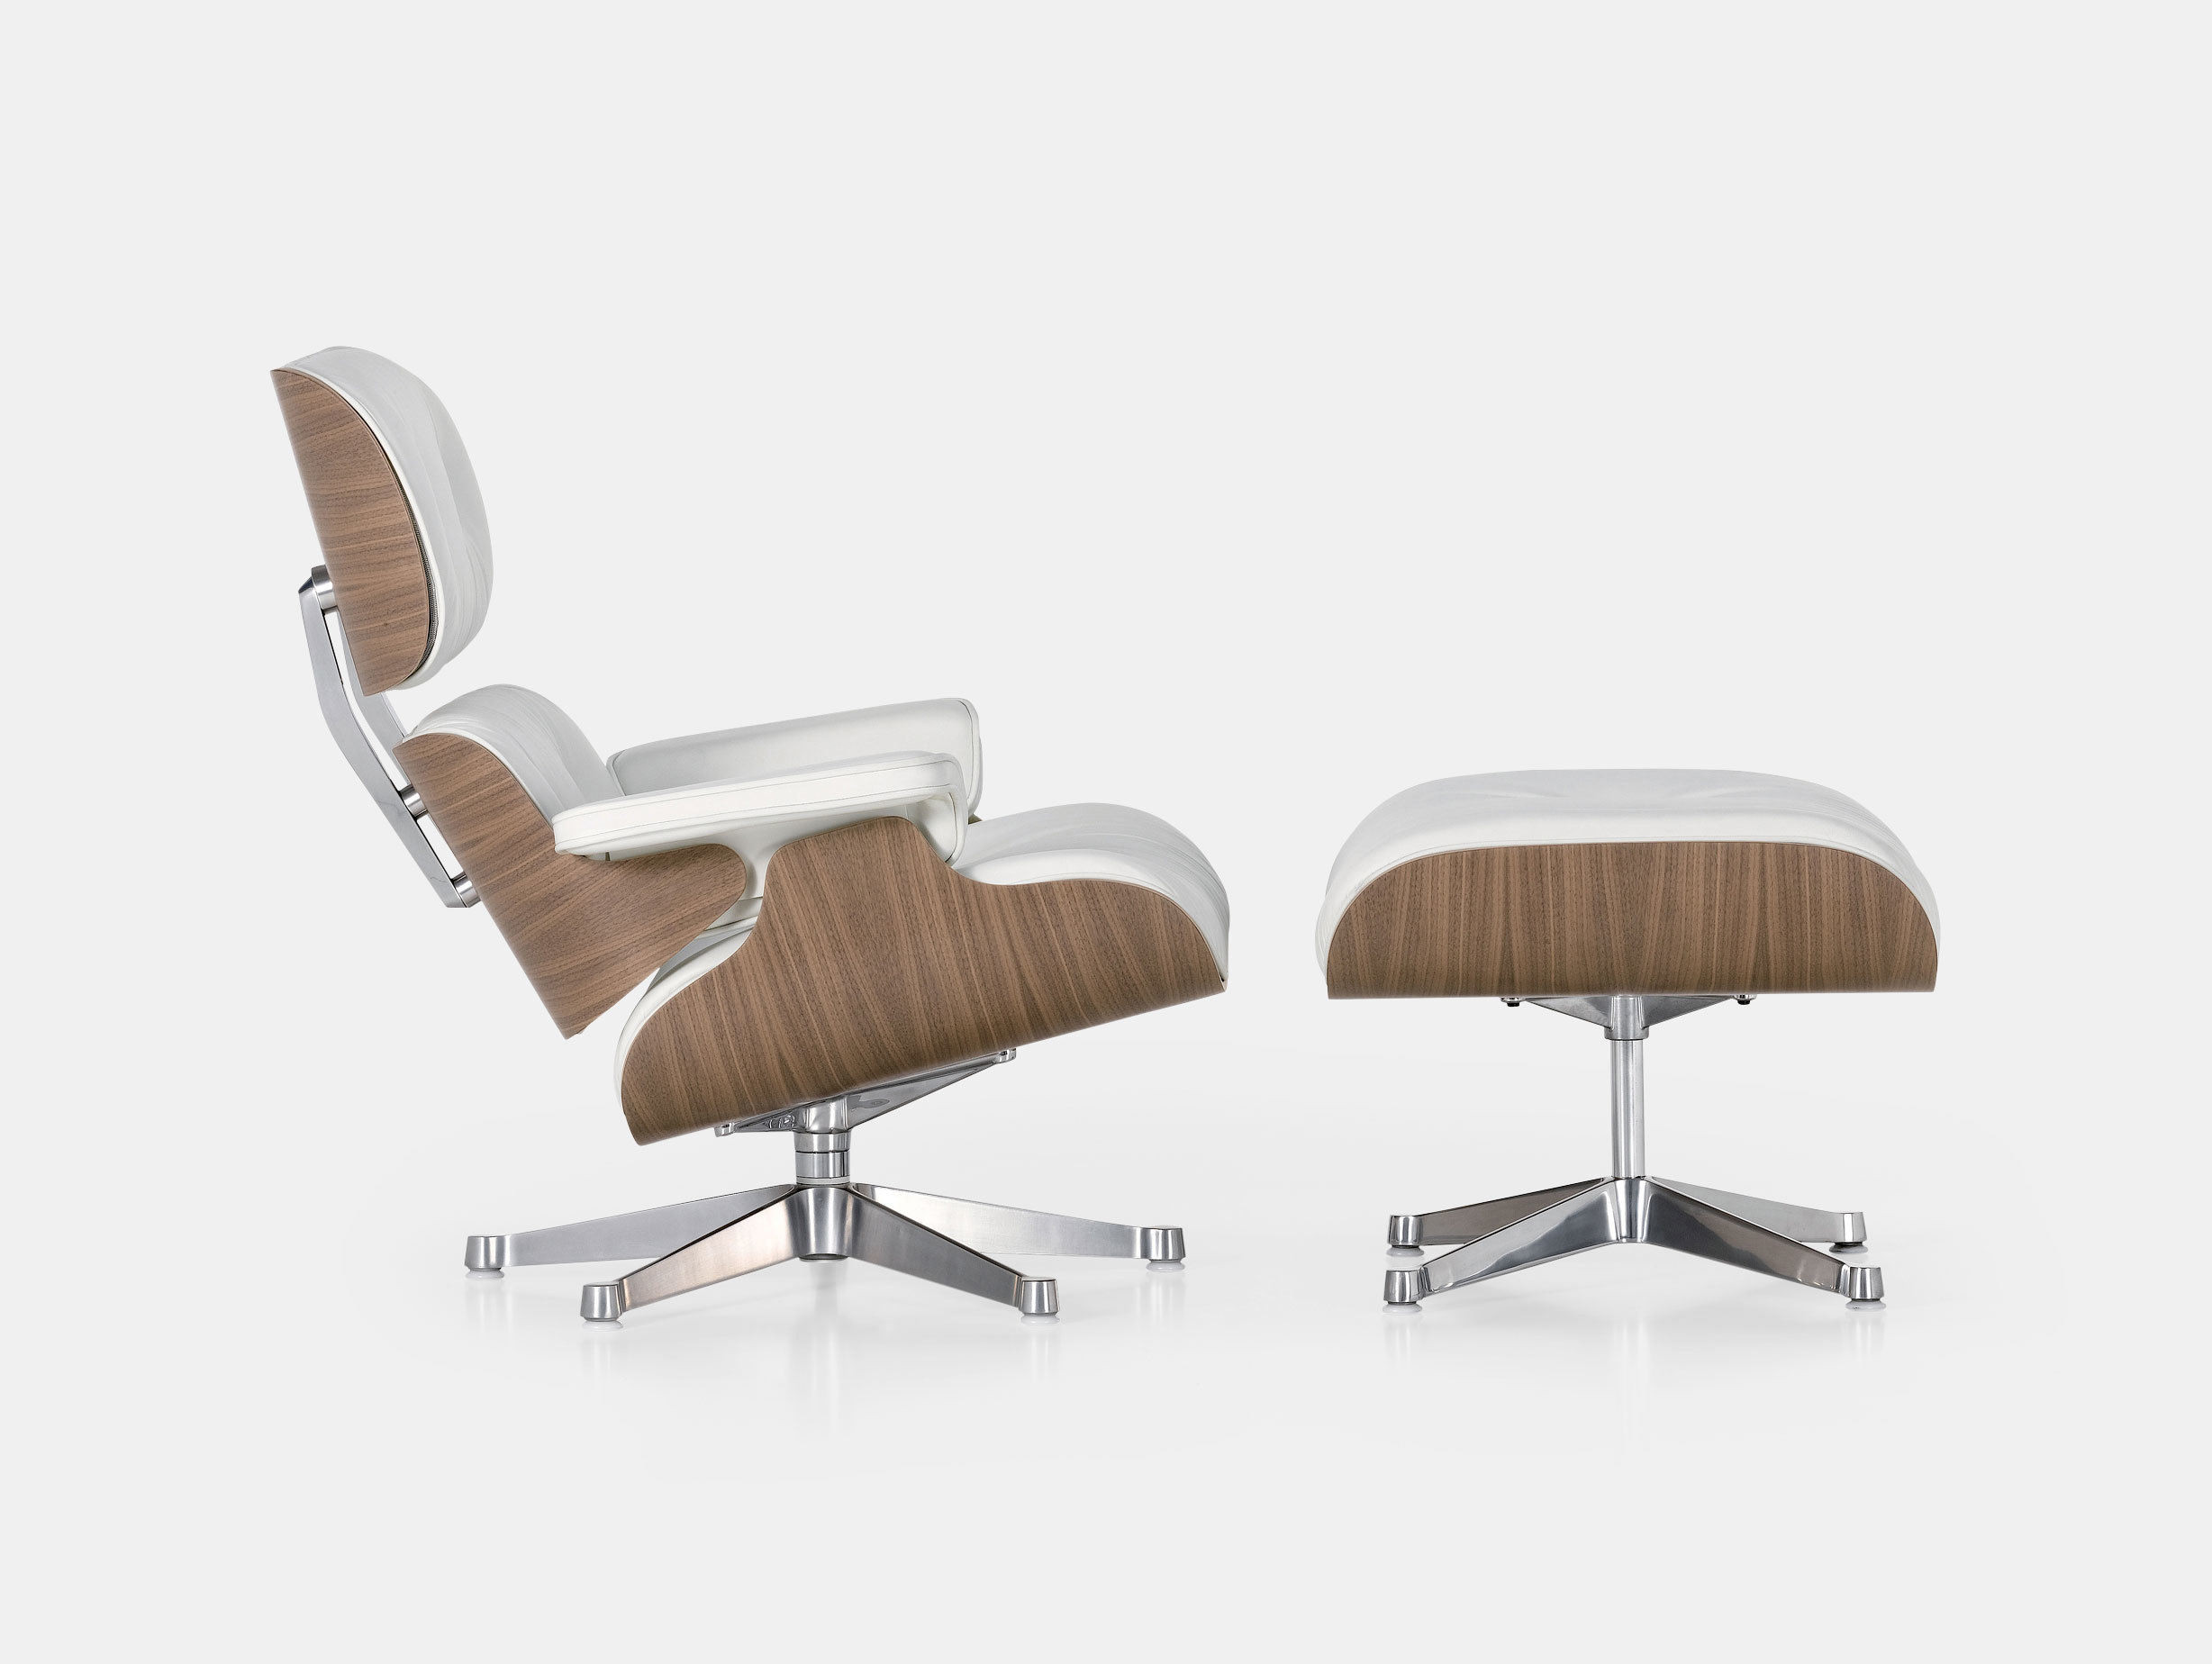 Vitra Eames Lounge Chair Dwg Eames Lounge Chair Ottoman Viaduct